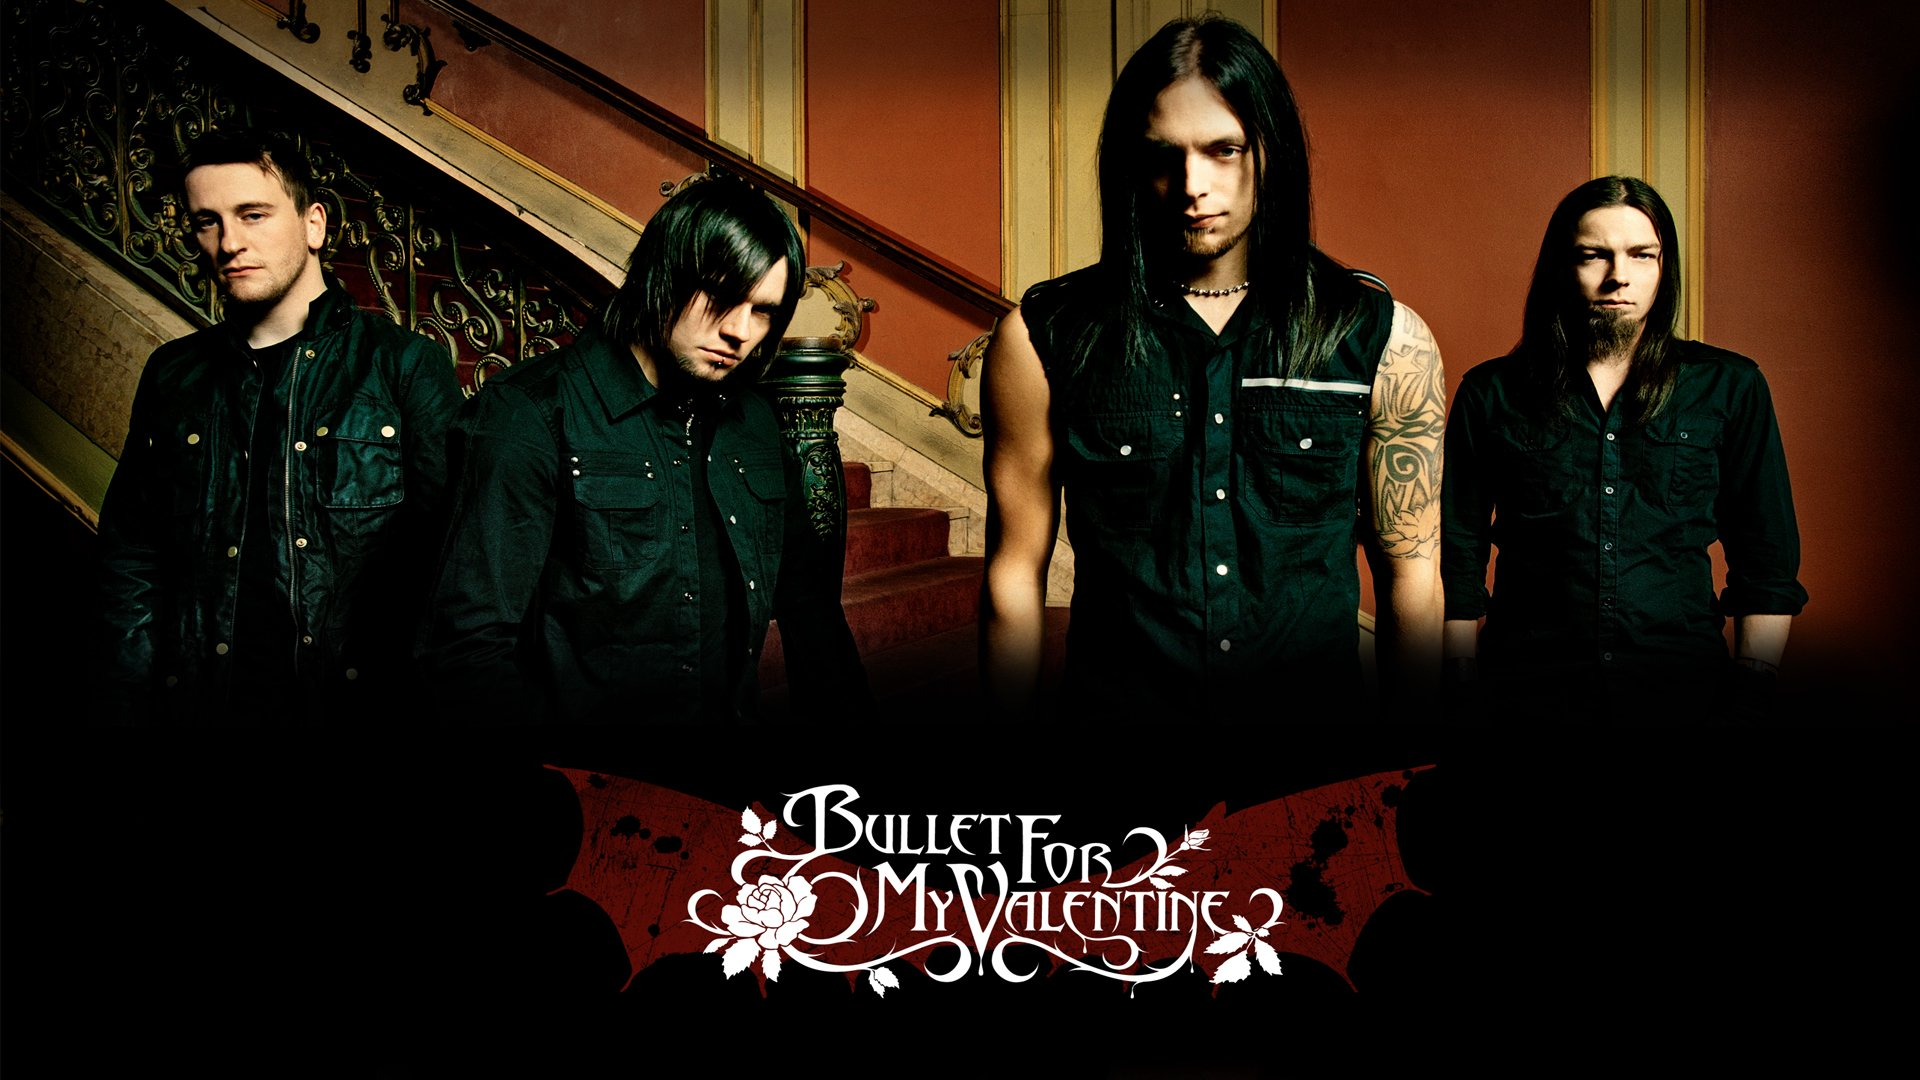 Bullet For My Valentine Hd Wallpaper Background Image 1920x1080